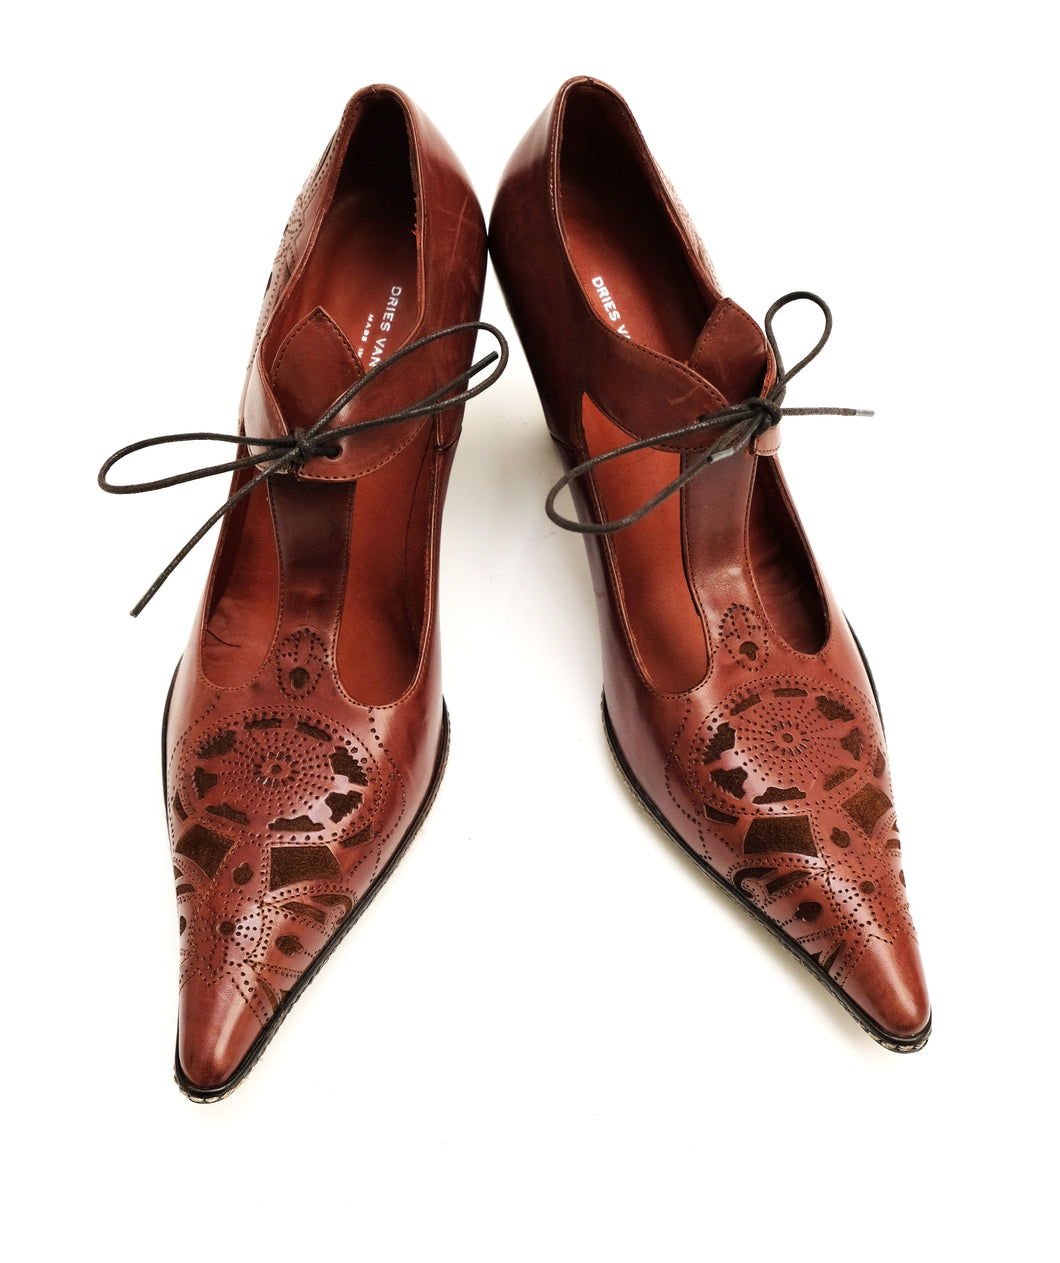 Dries Van Noten Brown Mary Jane Shoes with Suede Details, UK5-5.5